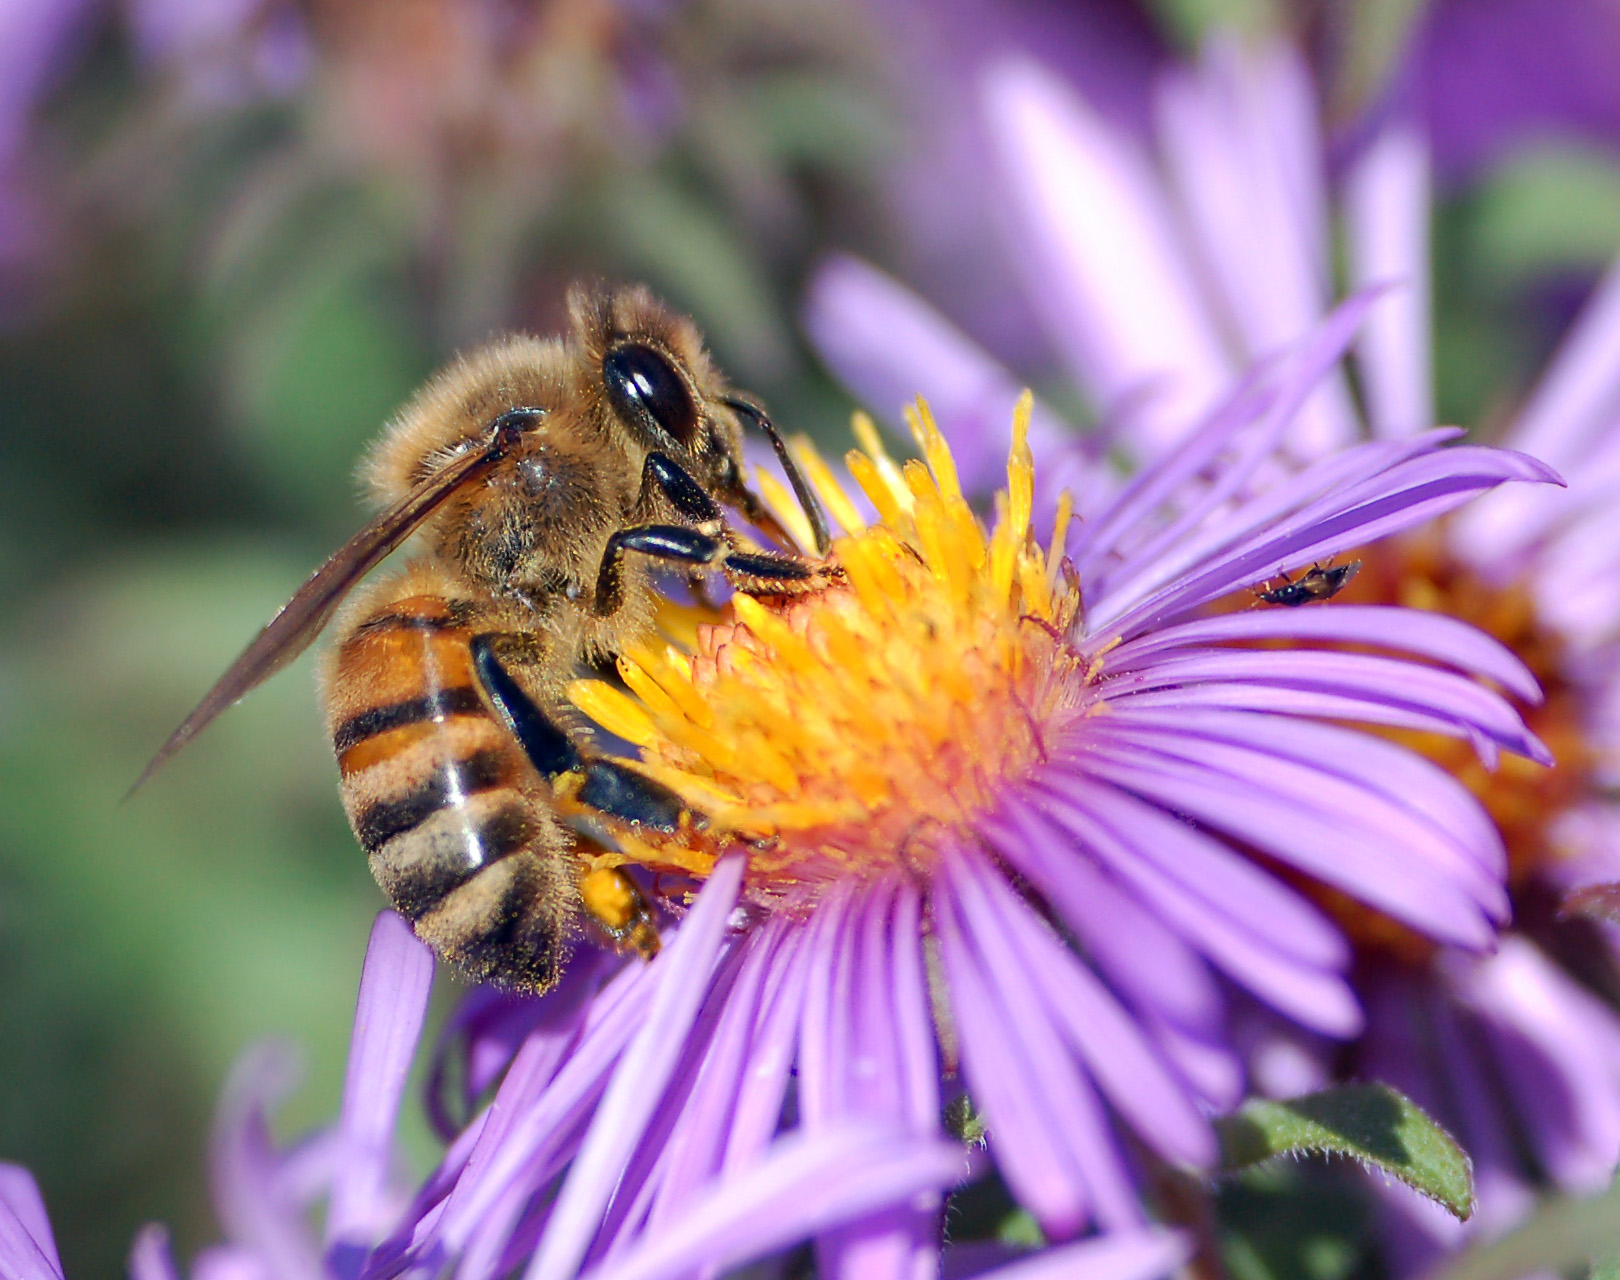 How to Save Bees and Pollinators in Your Own Home Garden